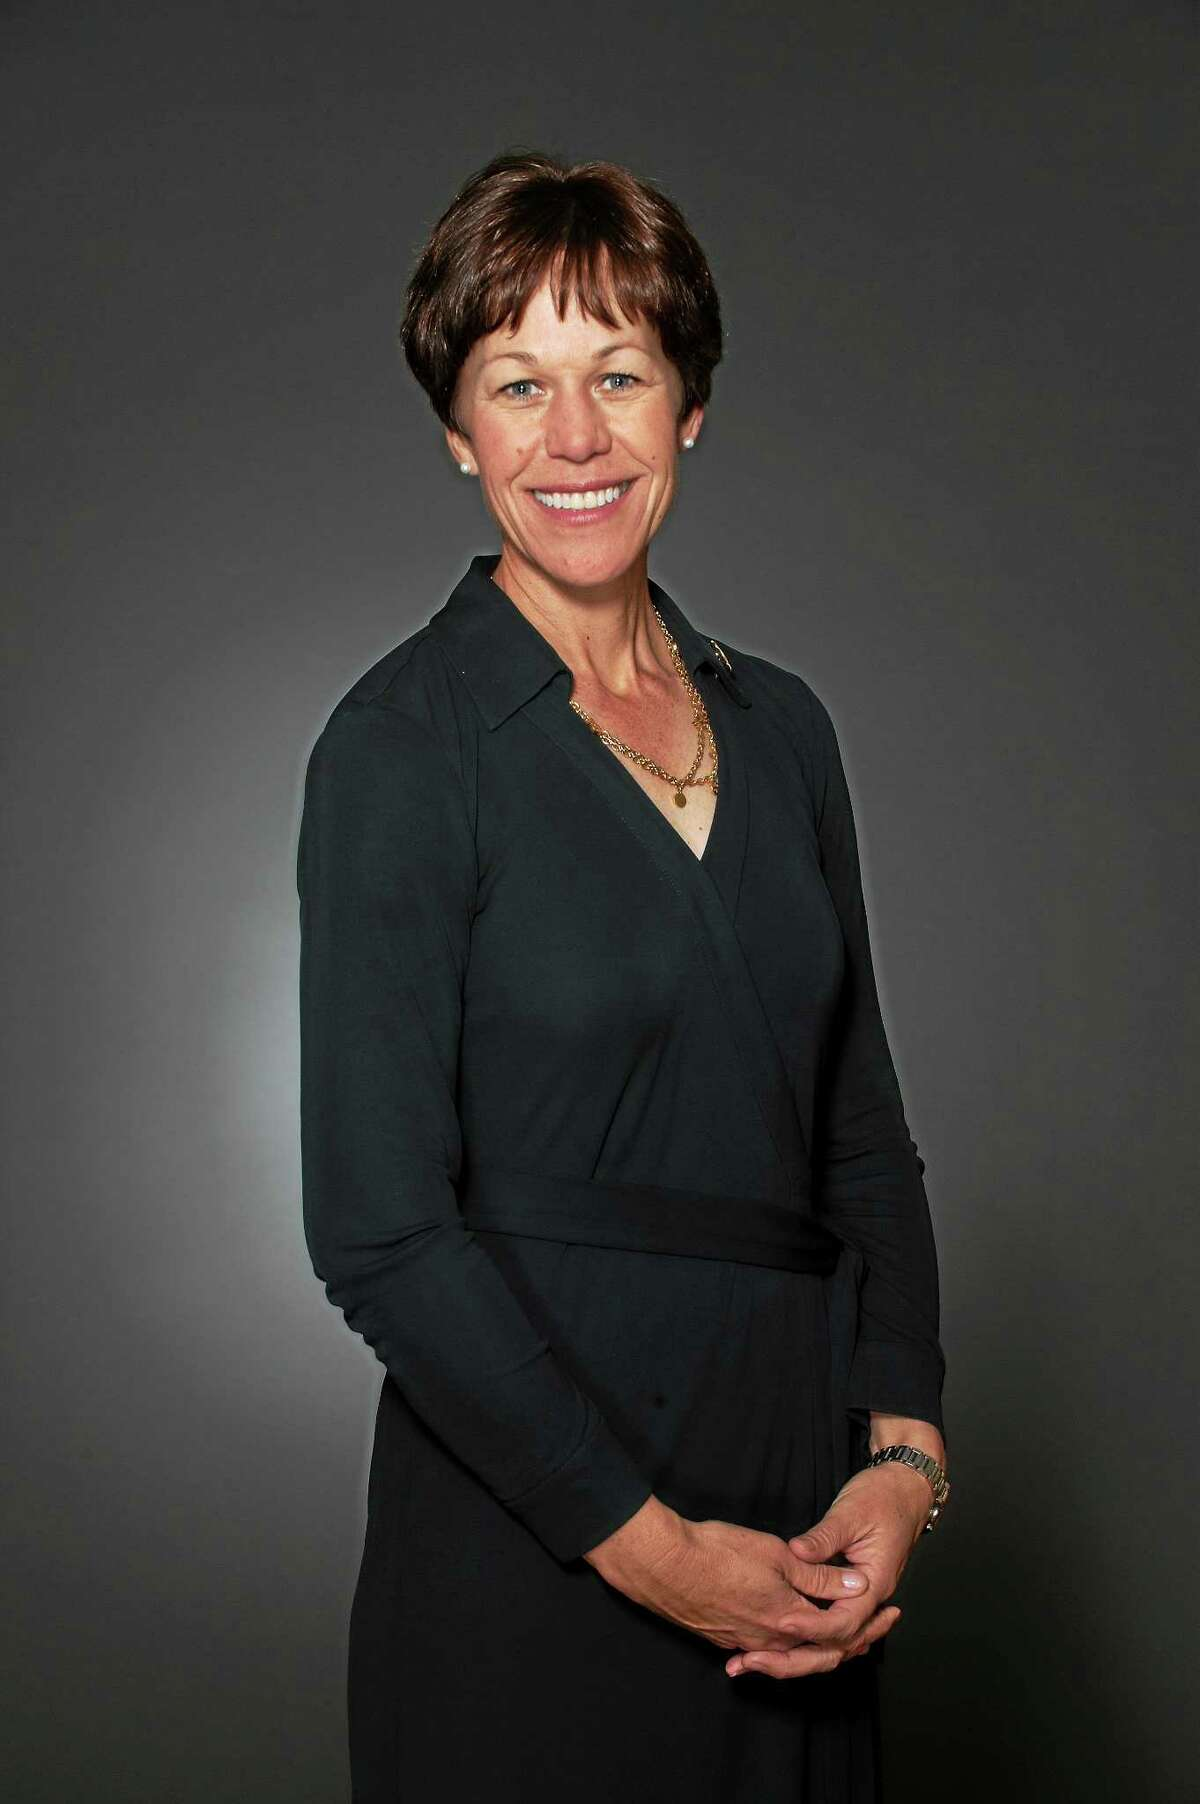 Suzy Whaley, a Farmington resident, is the first woman to be elected as an officer for the PGA of America.